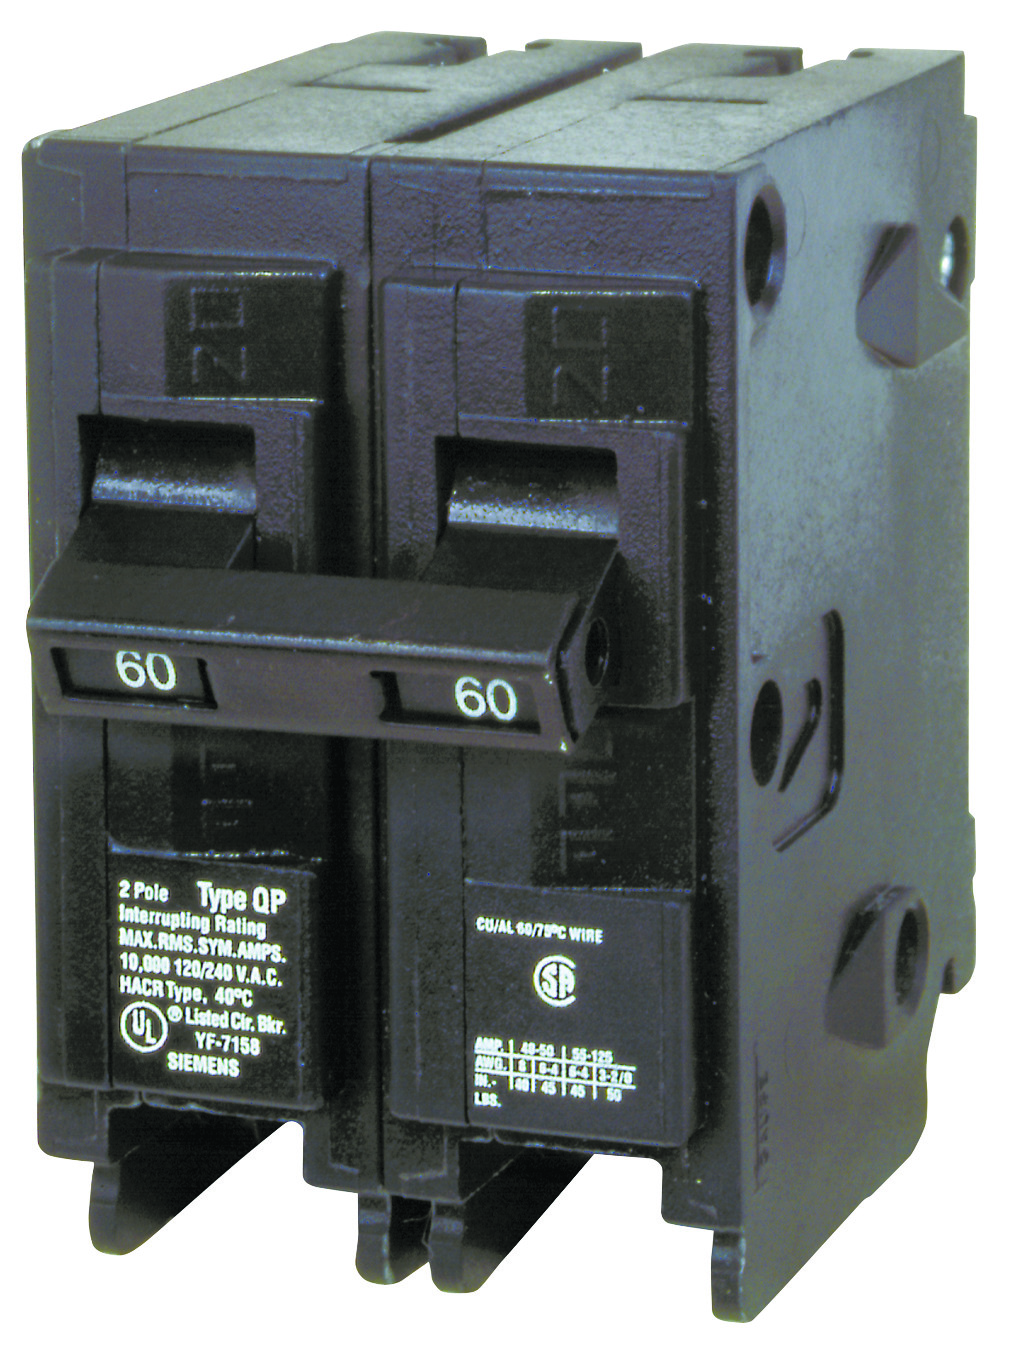 Siemens Qp 50 Amp 2 Pole Double Circuit Breaker Nemetas 2pole Gfci Breakerhom250gficp The Home Depot Q260 60 Two Hover To Zoom